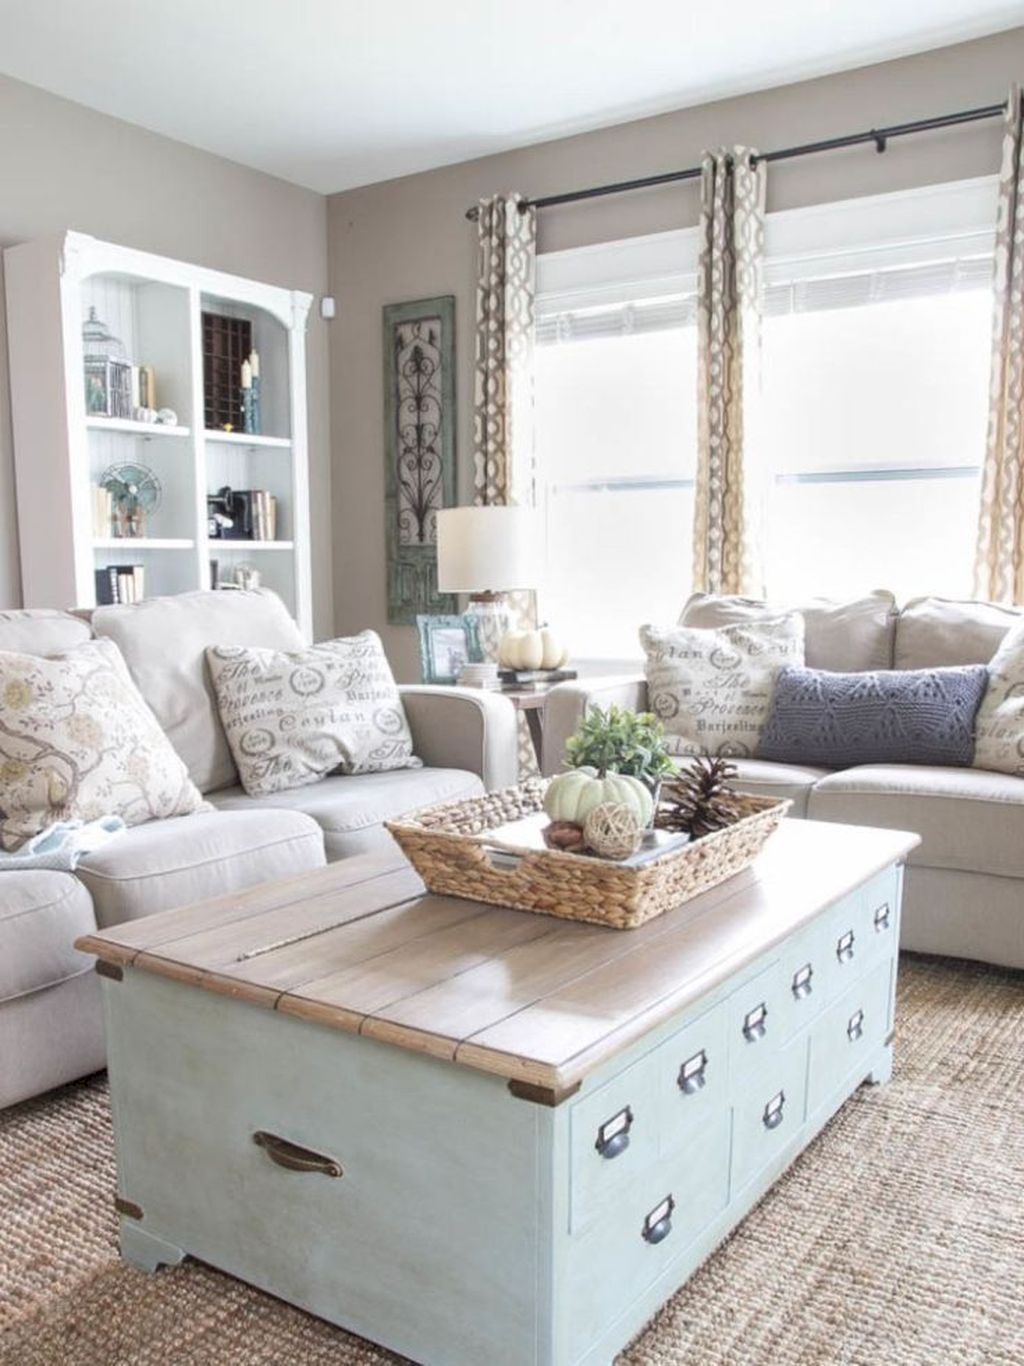 Comfy Farmhouse Living Room Designs To Steal: 04 Cozy Farmhouse Living Room Makeover Decor Ideas